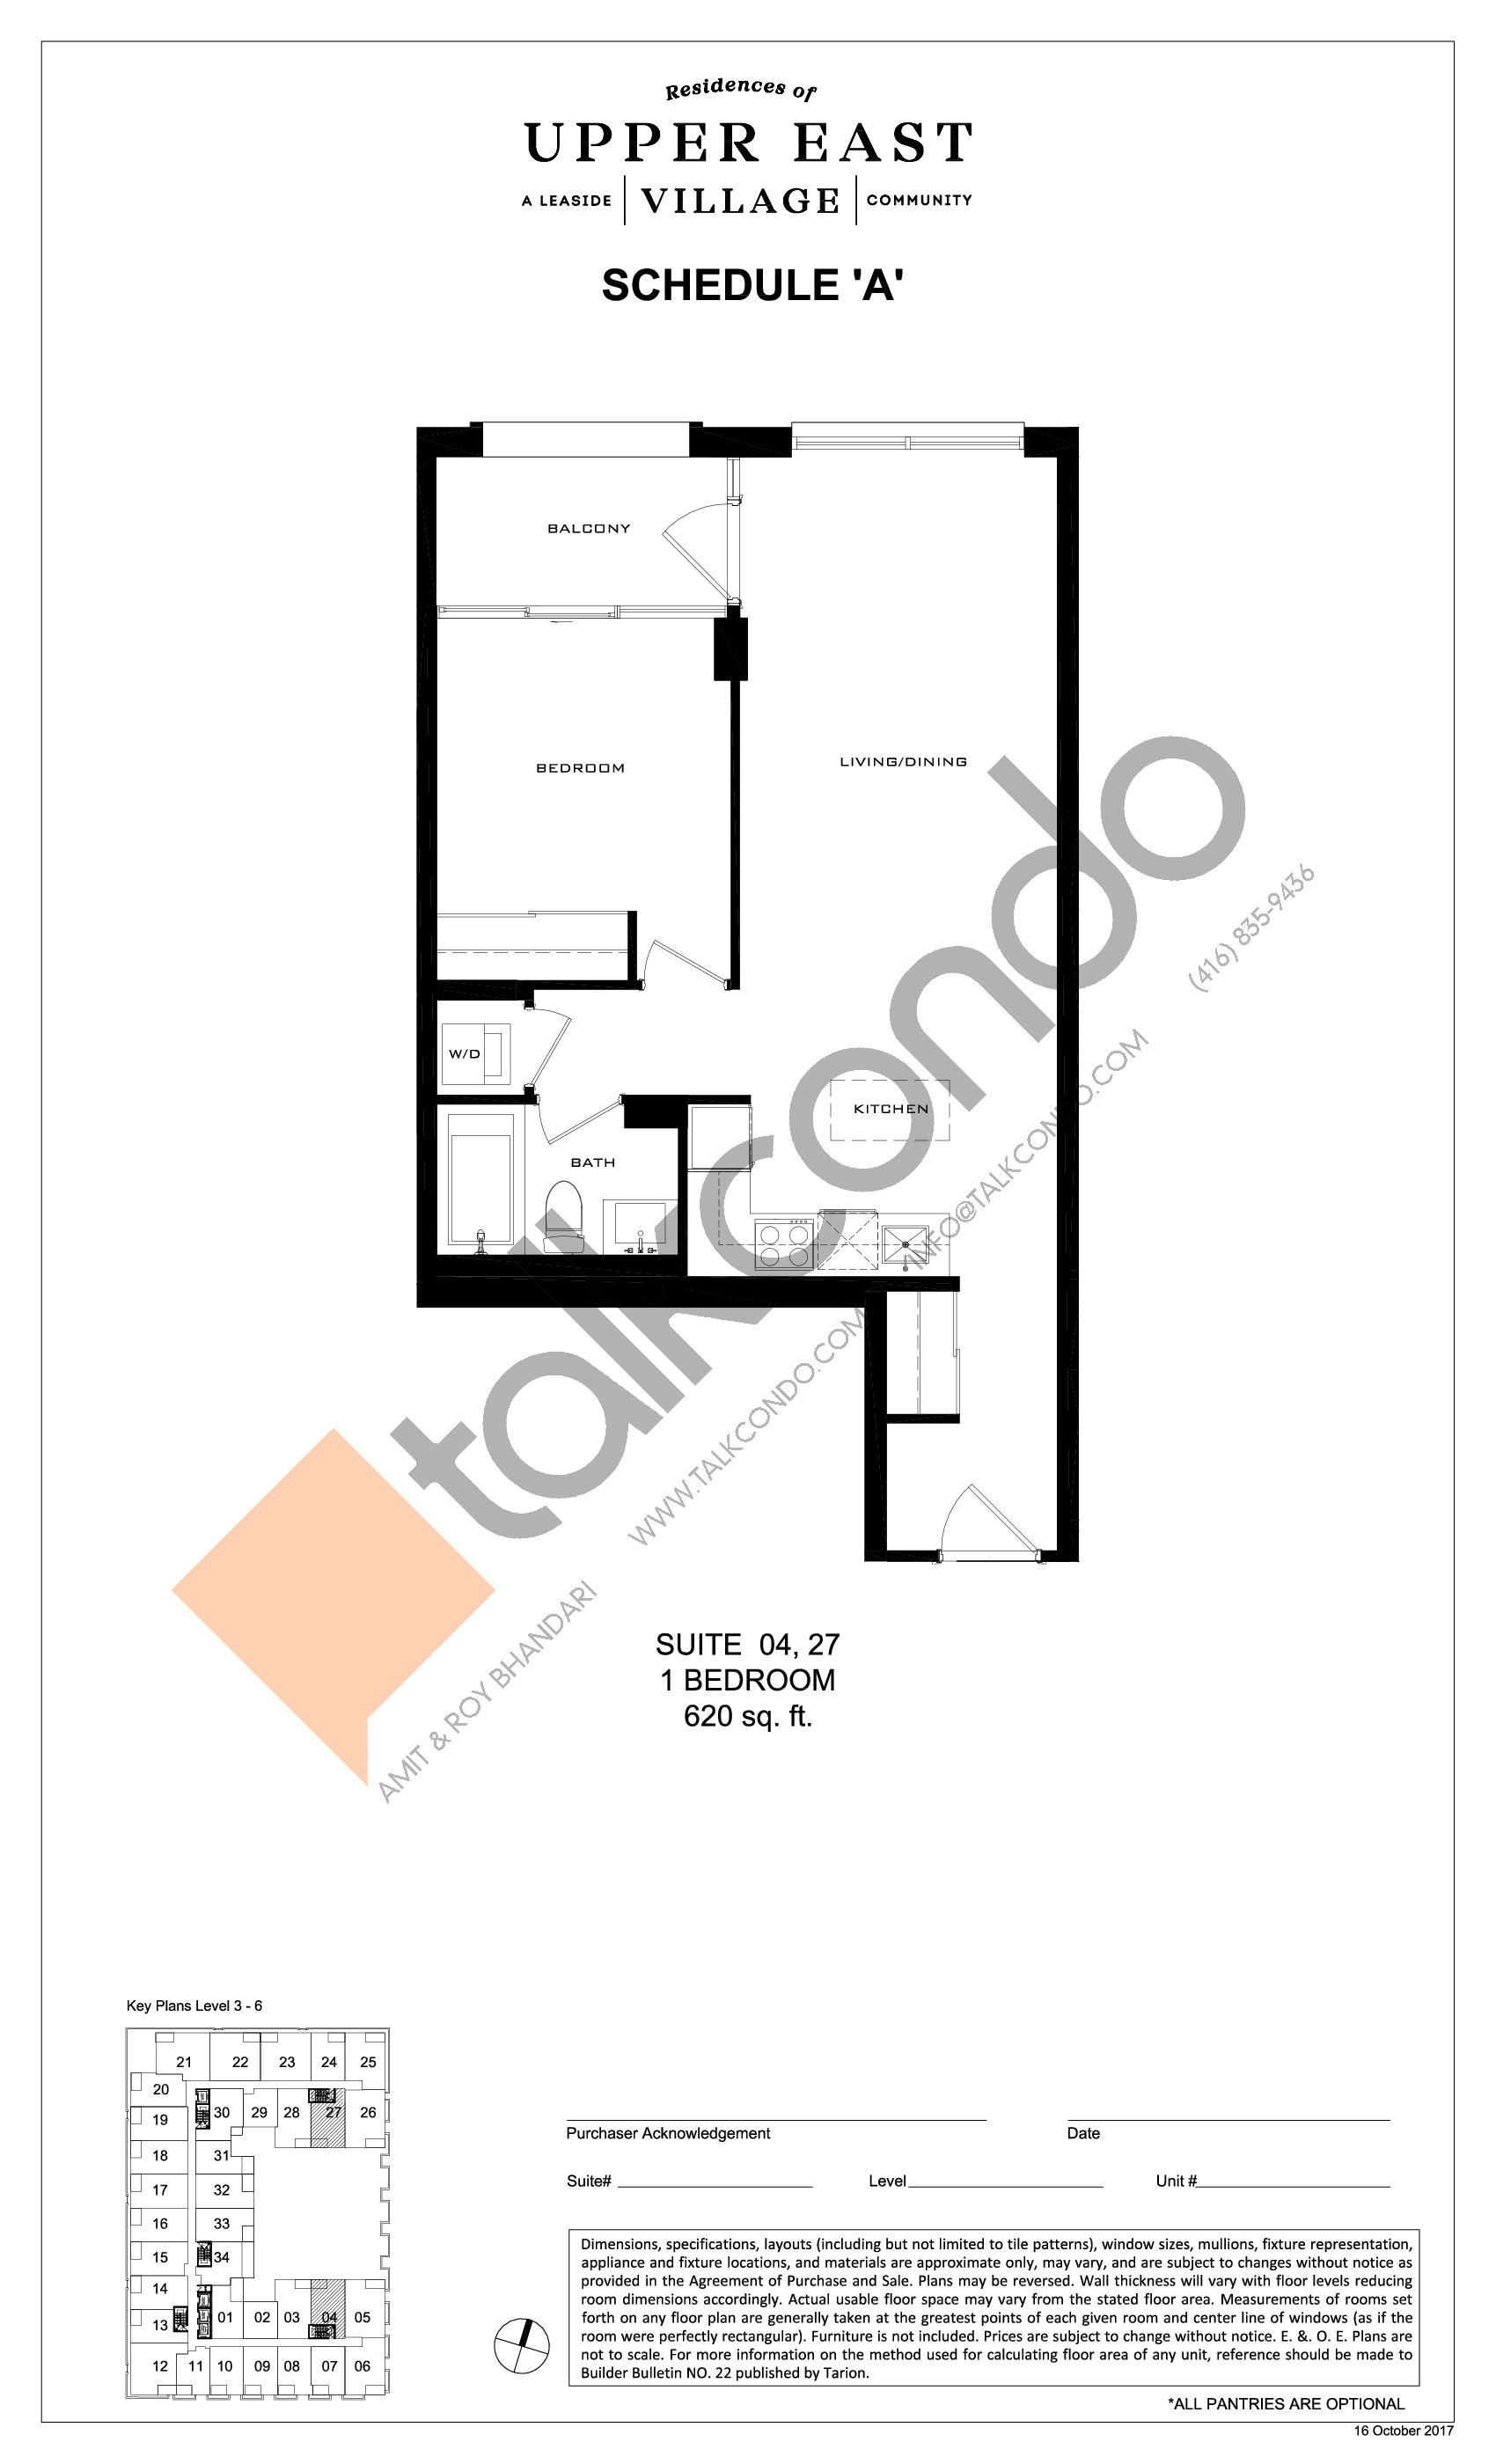 Suite 04, 27 Floor Plan at Upper East Village Condos - 620 sq.ft